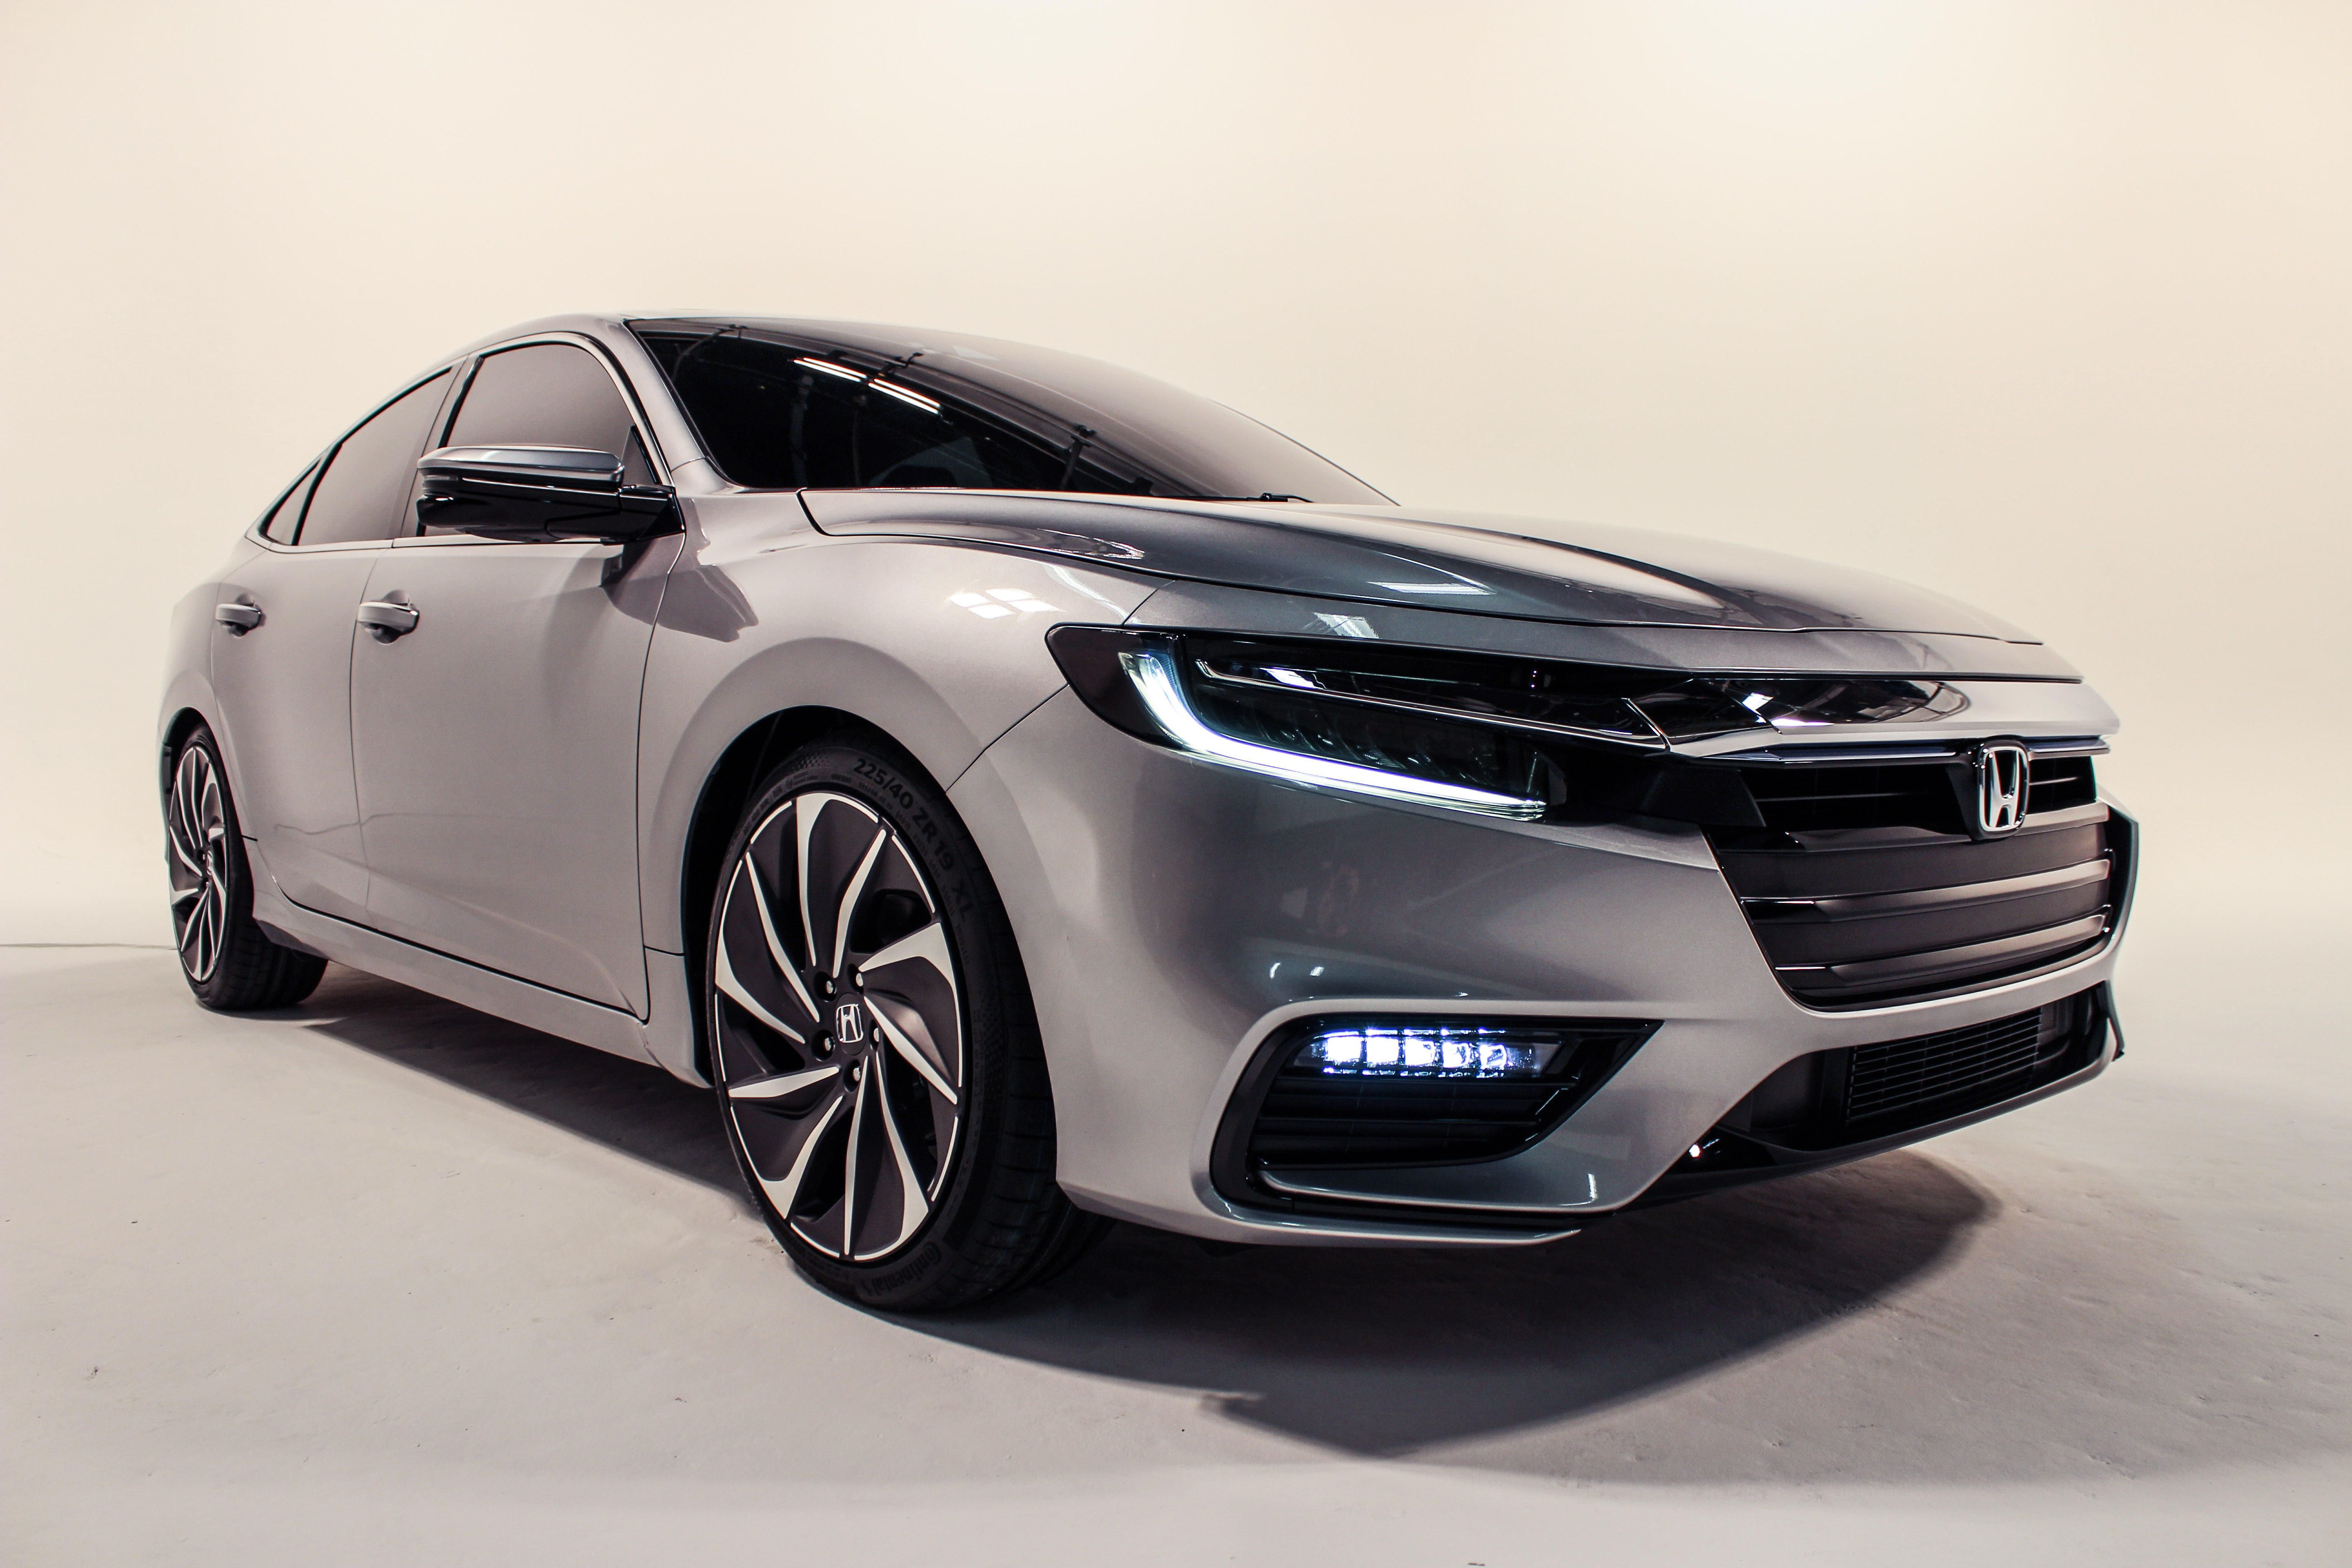 Honda Insight exterior restyling